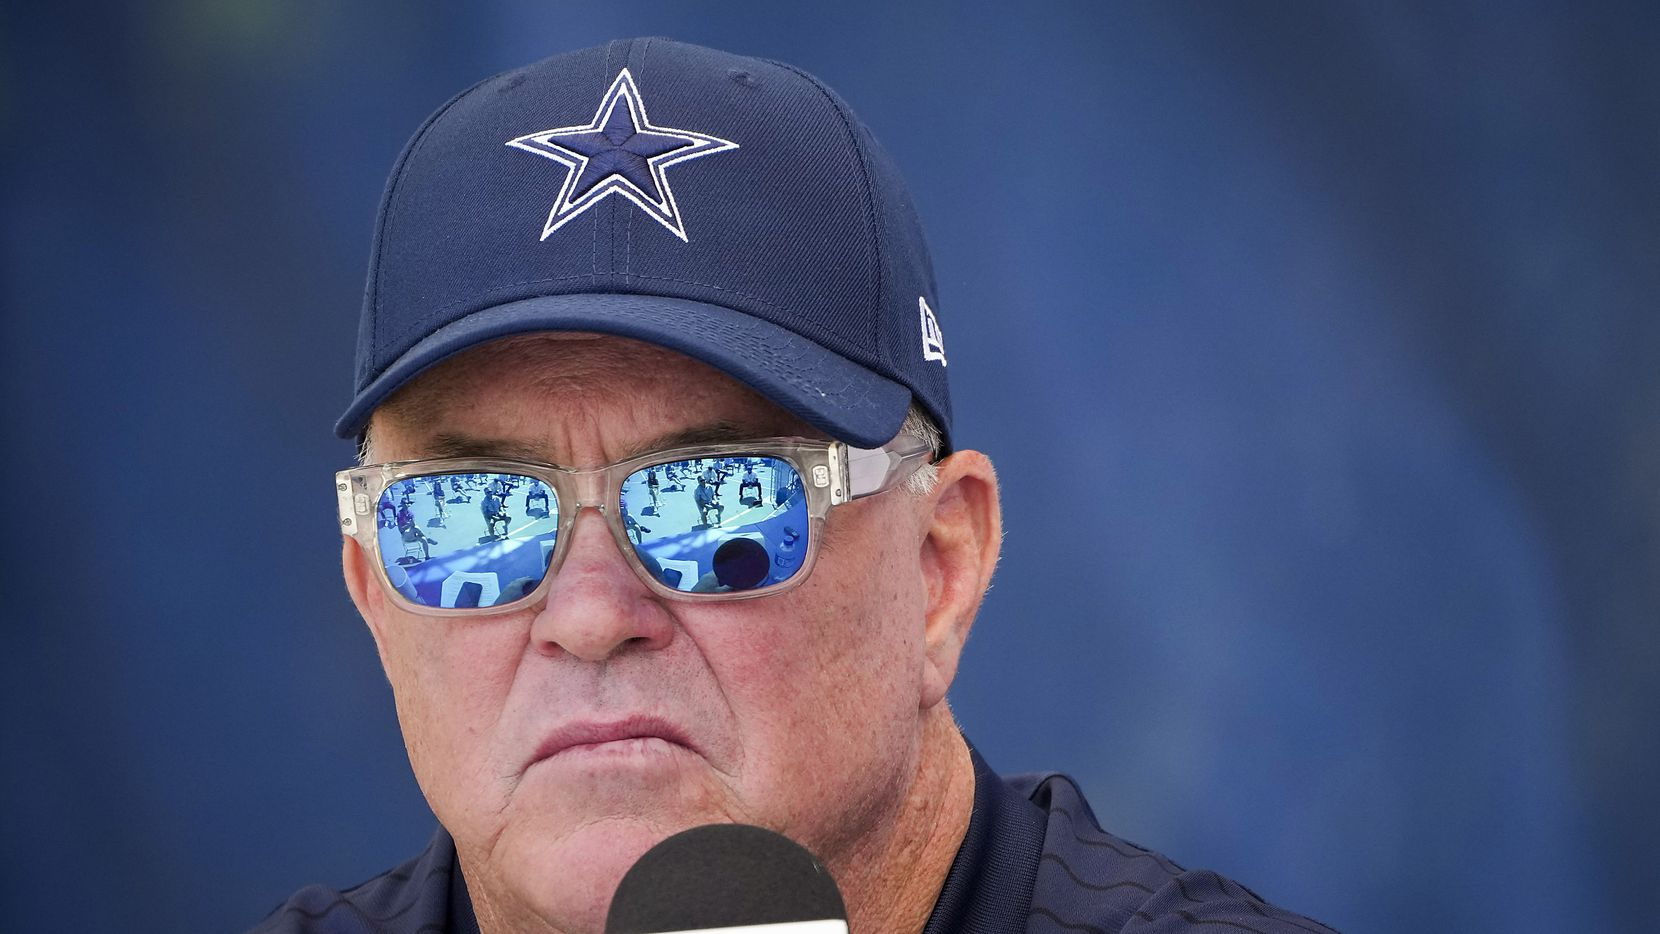 Dallas Cowboys executive vice president Stephen Jones listens during the opening news conference for team's training camp on Wednesday, July 21, 2021, in Oxnard, Calif.